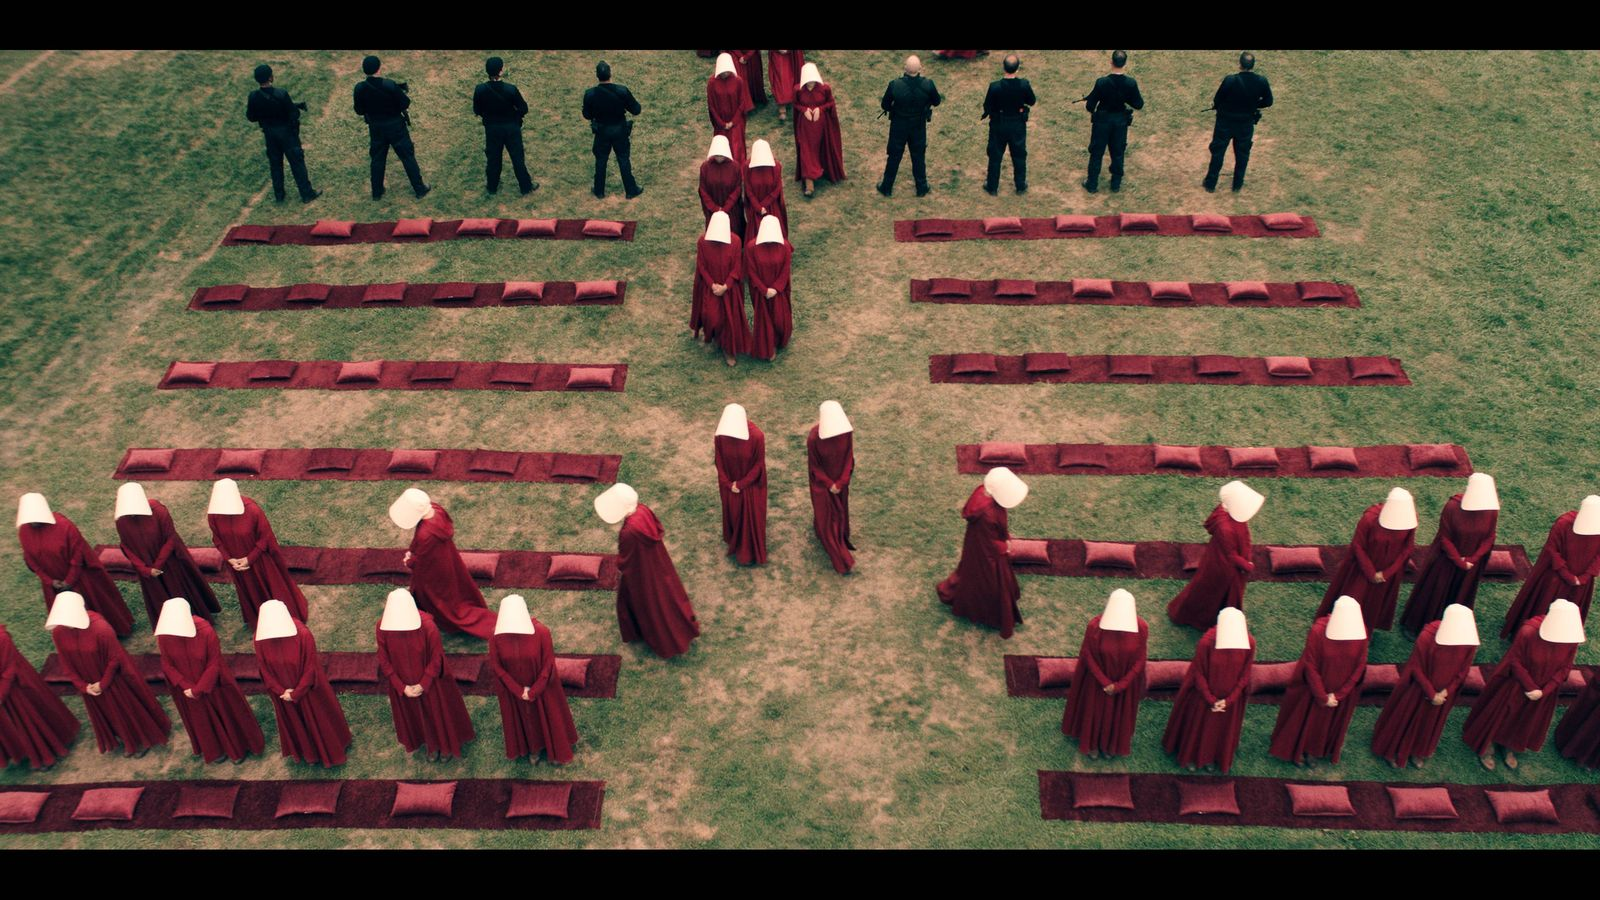 Image of handmaids filing into a grassy area, from the series.